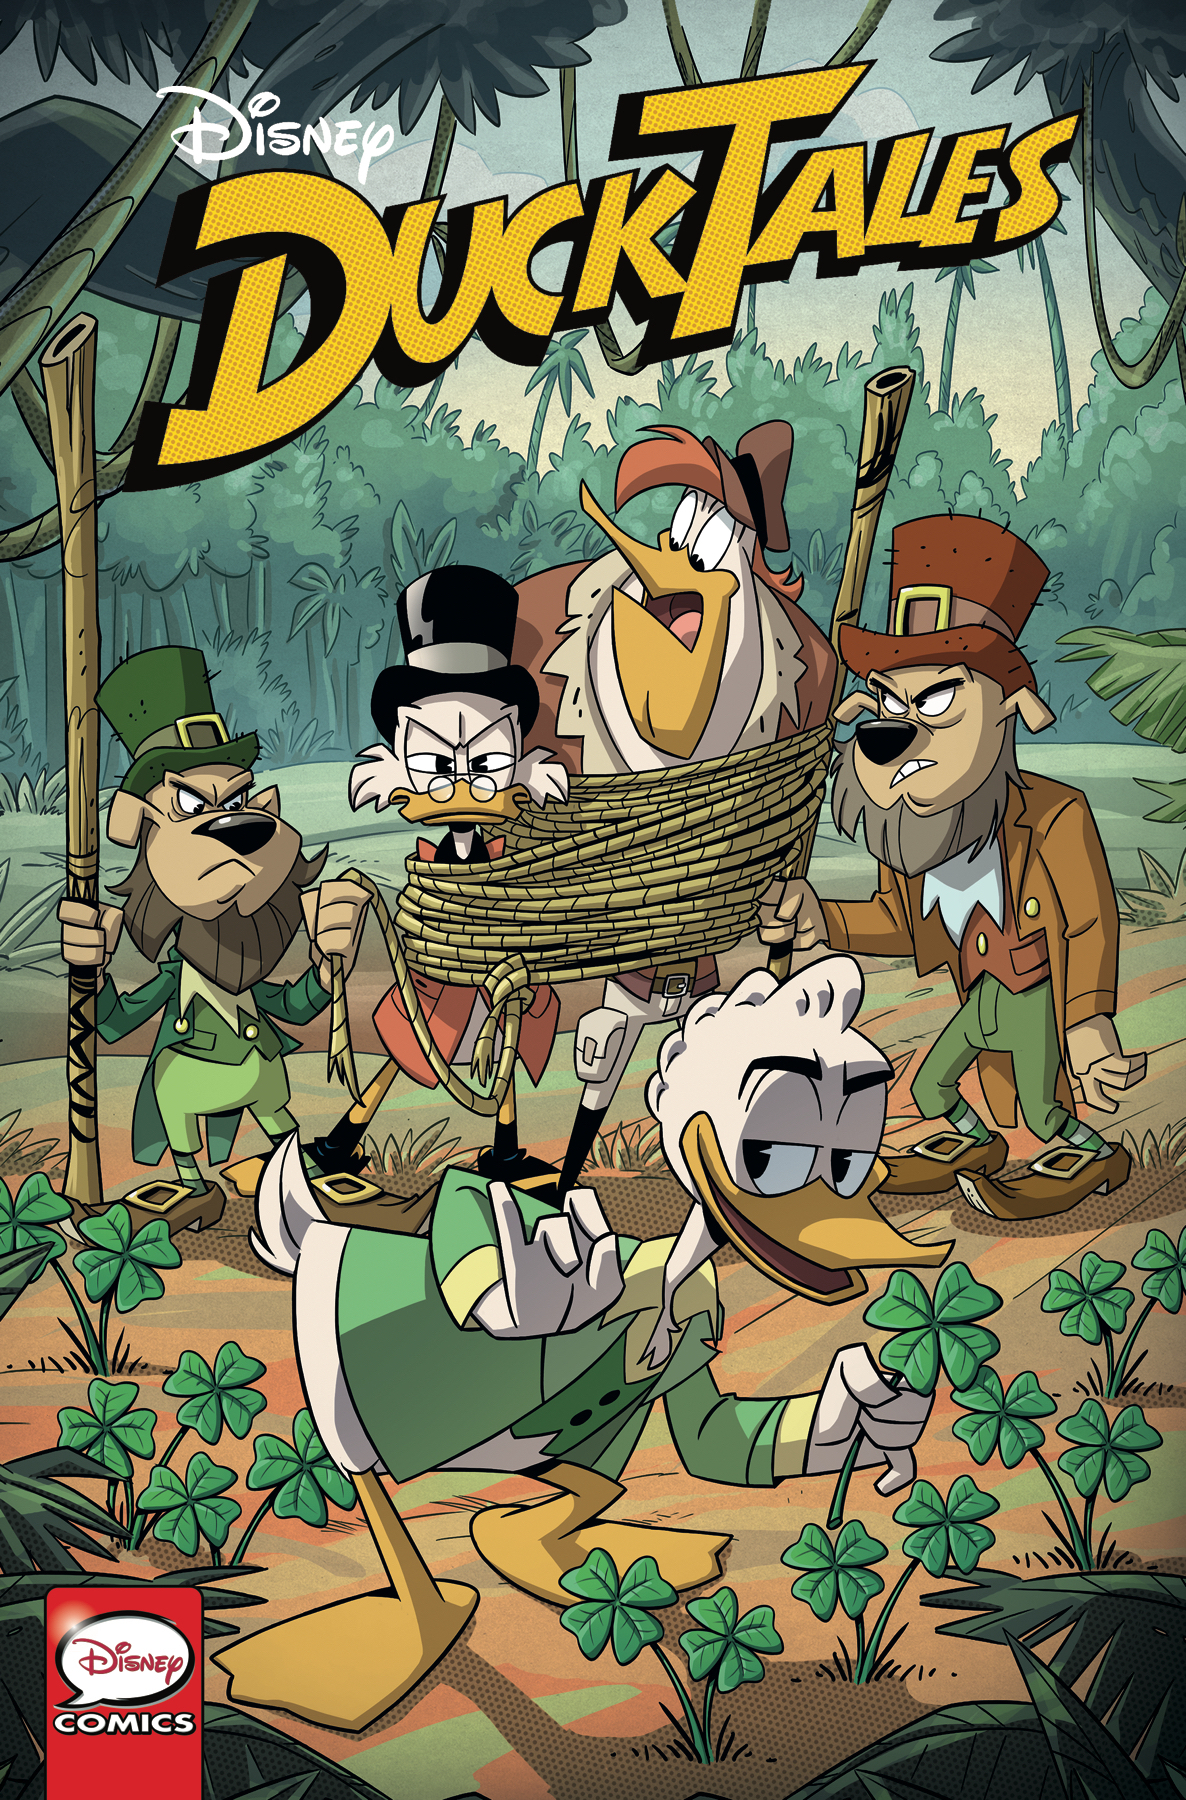 DUCKTALES TP VOL 05 MONSTERS AND MAYHEM